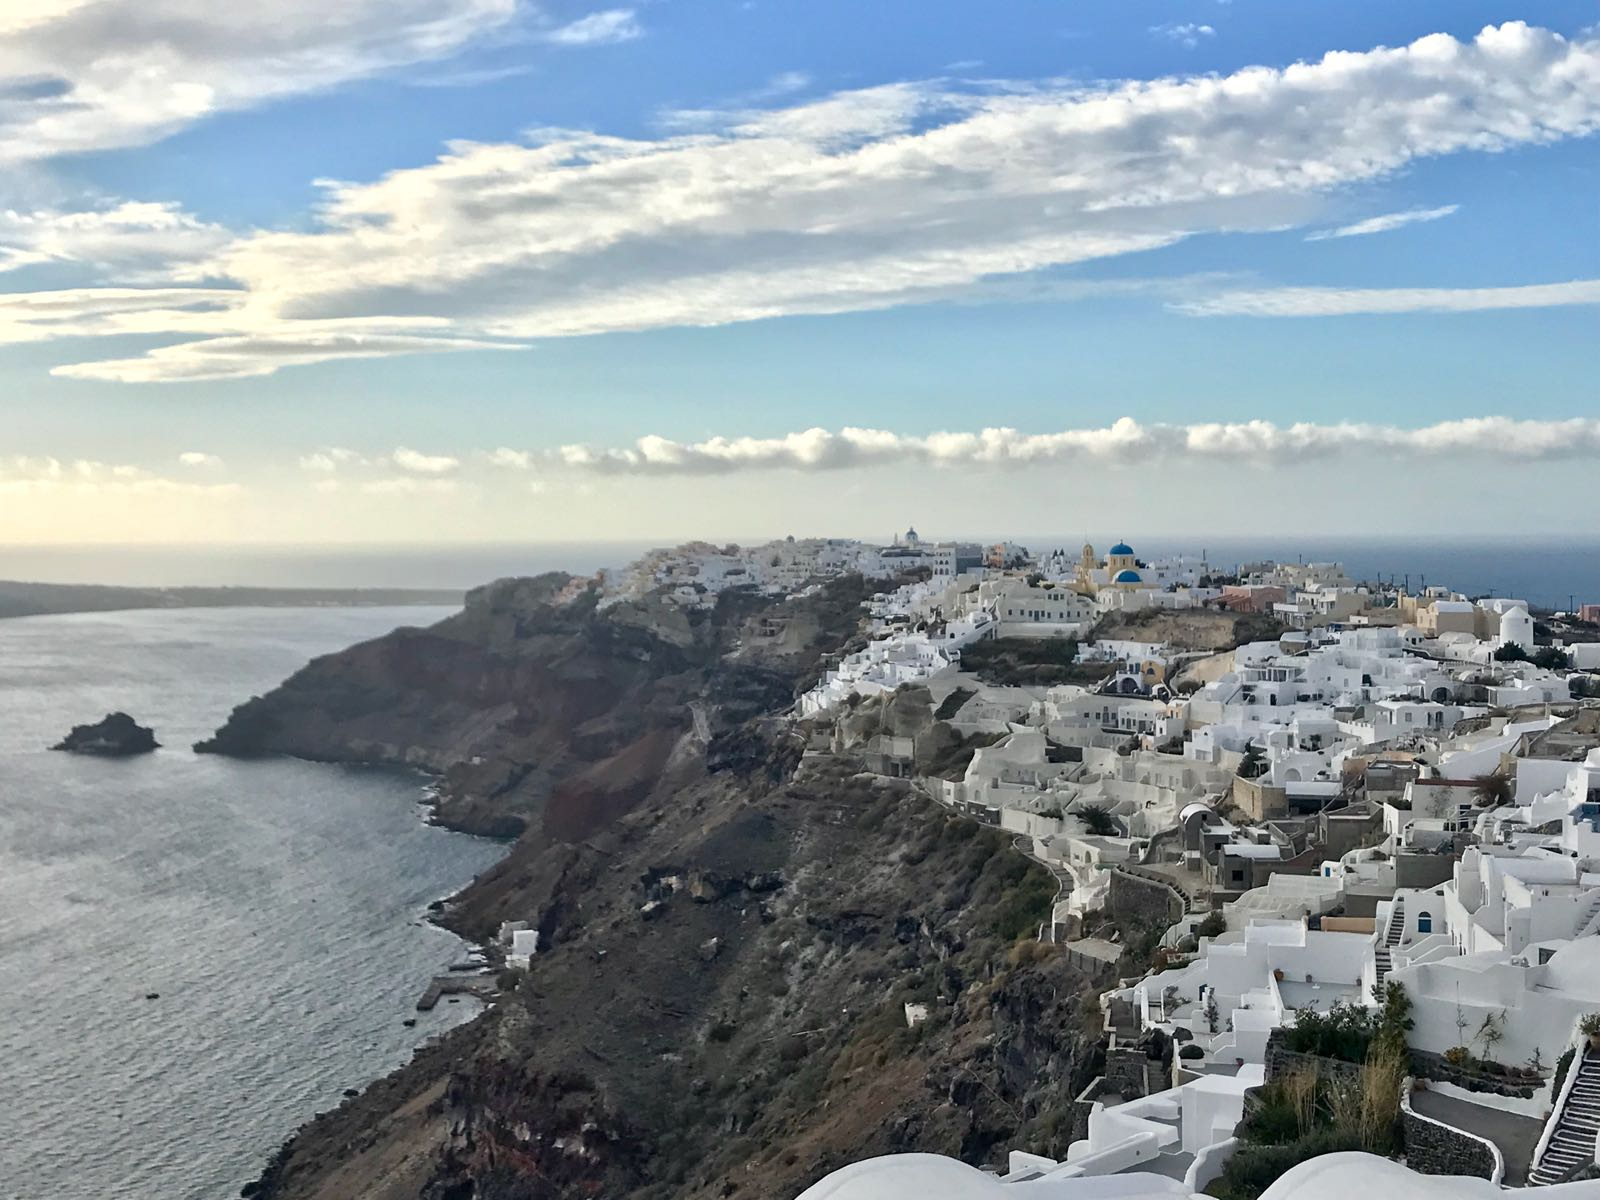 View of Oia from above